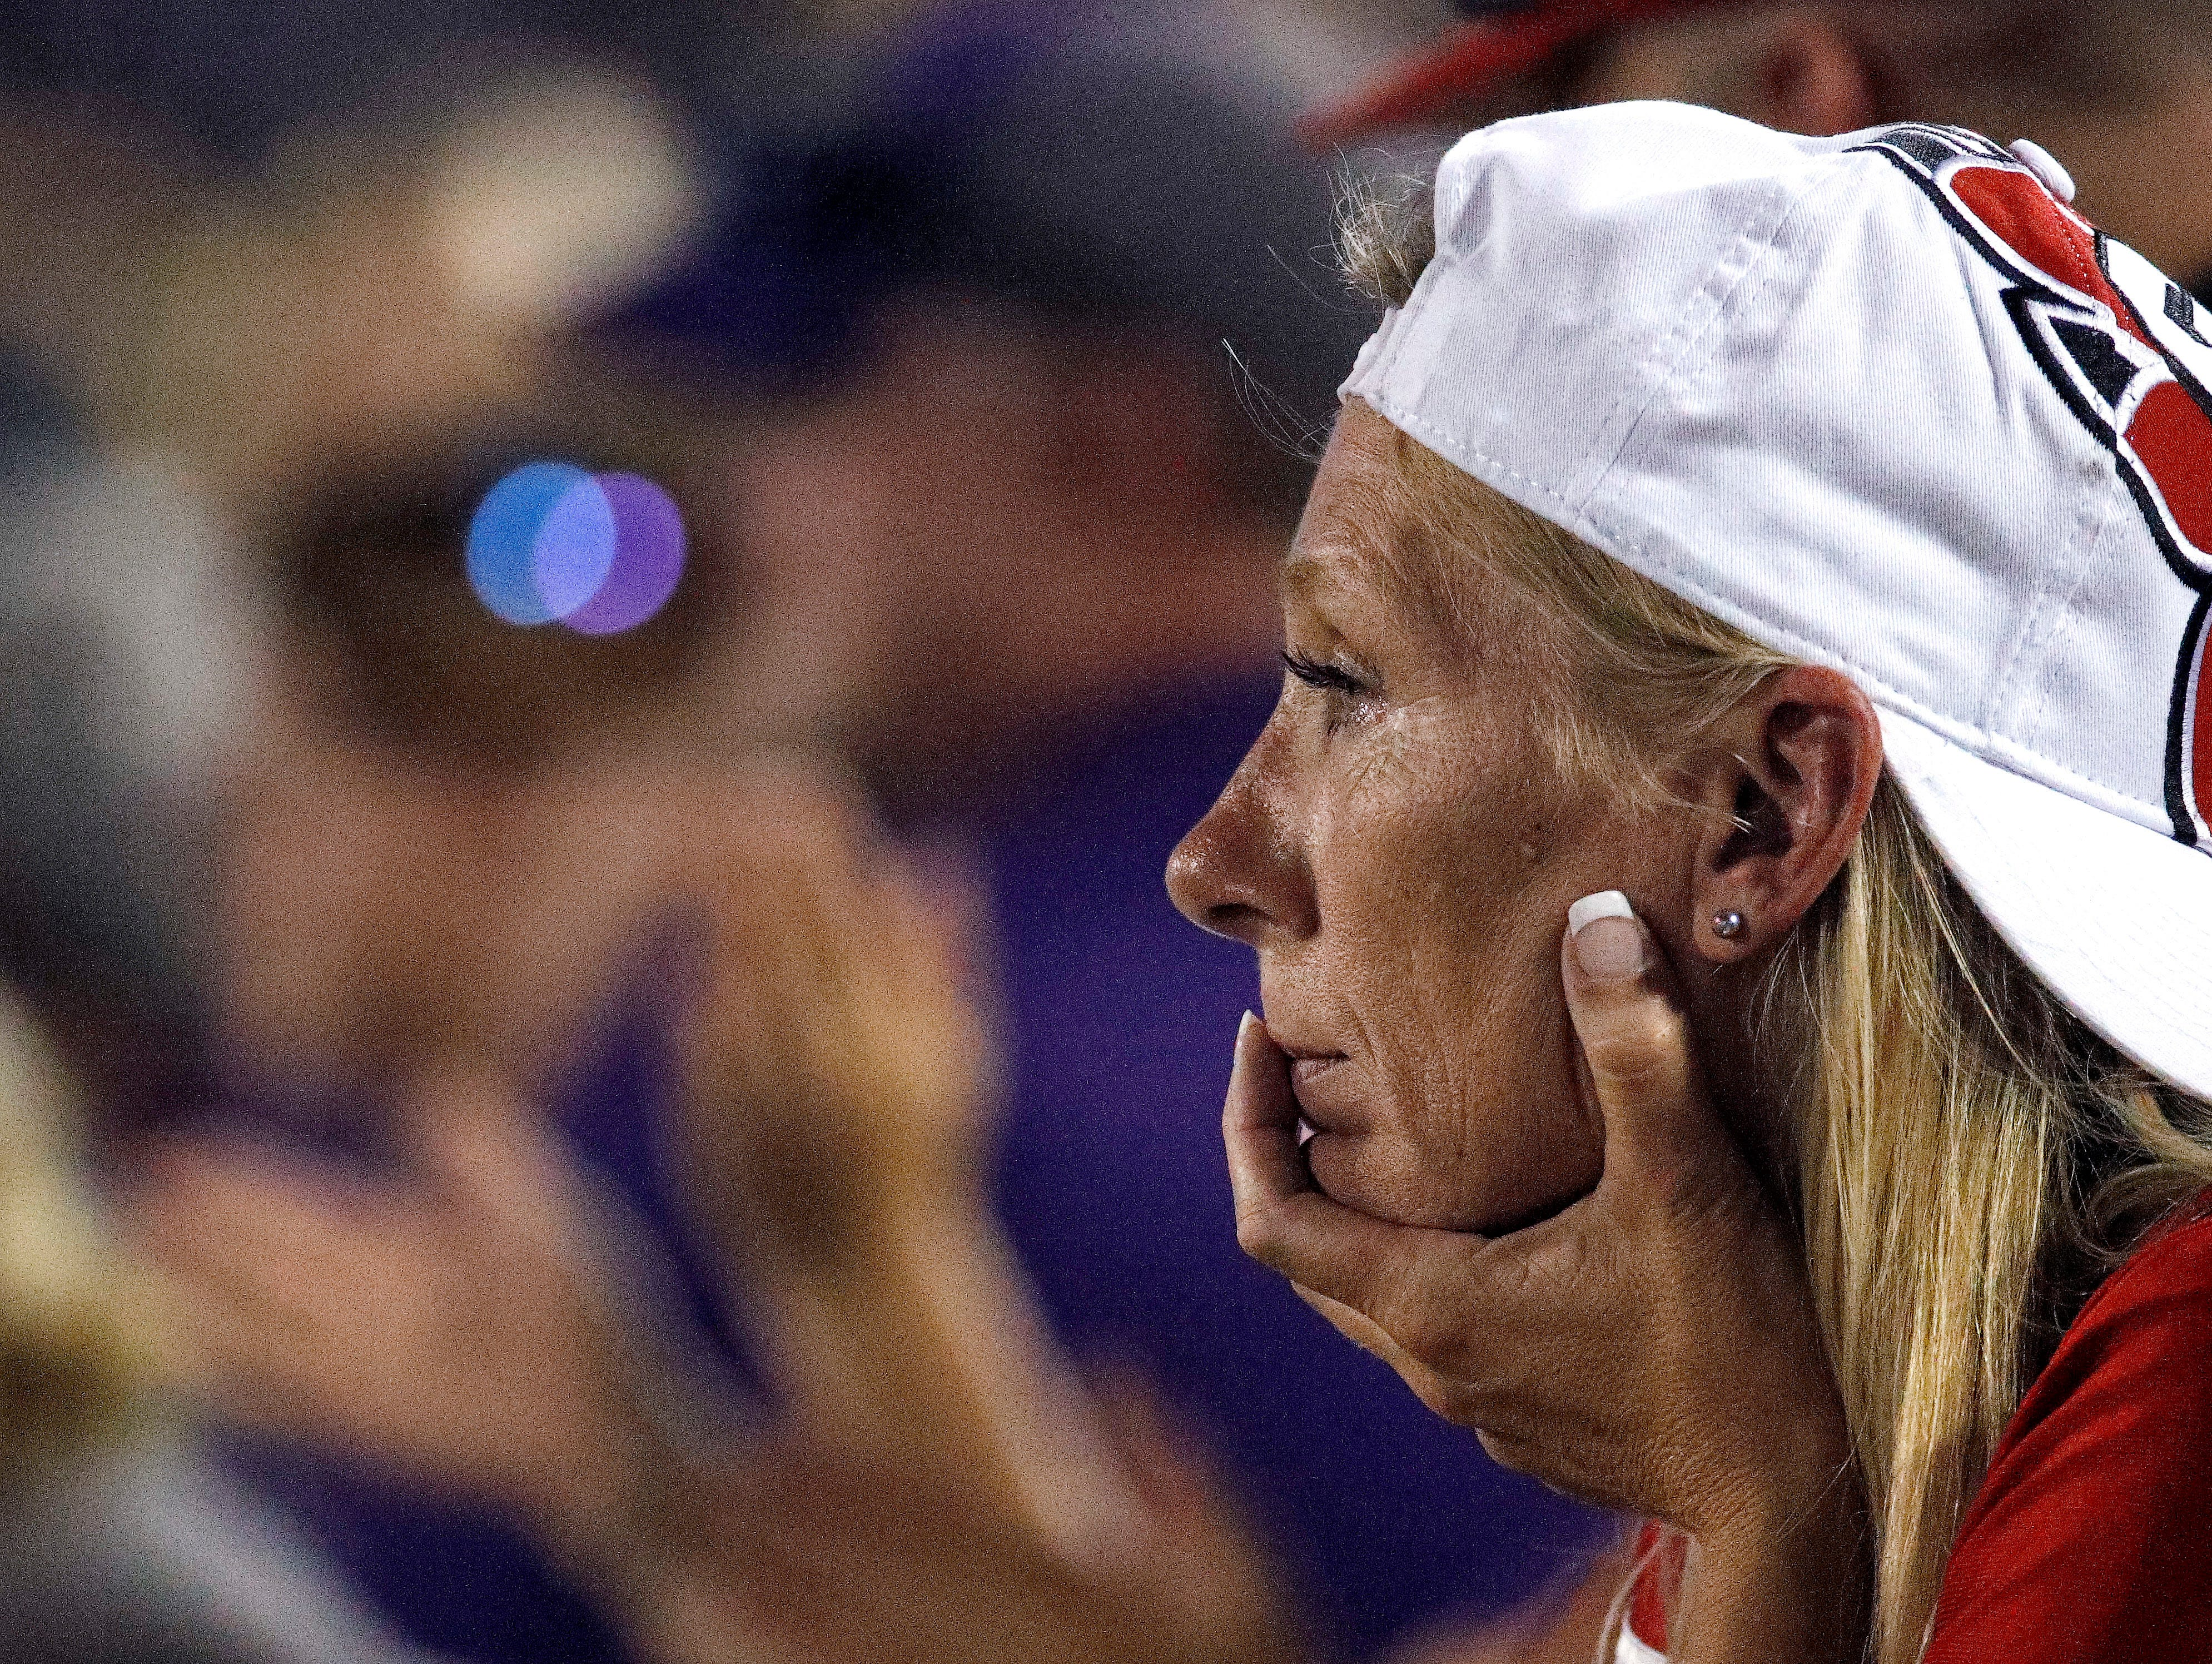 A South Dakota fan watches during the second half of an NCAA college football game against Kansas State Saturday, Sept. 1, 2018, in Manhattan, Kan. Kansas State won 27-24. (AP Photo/Charlie Riedel)